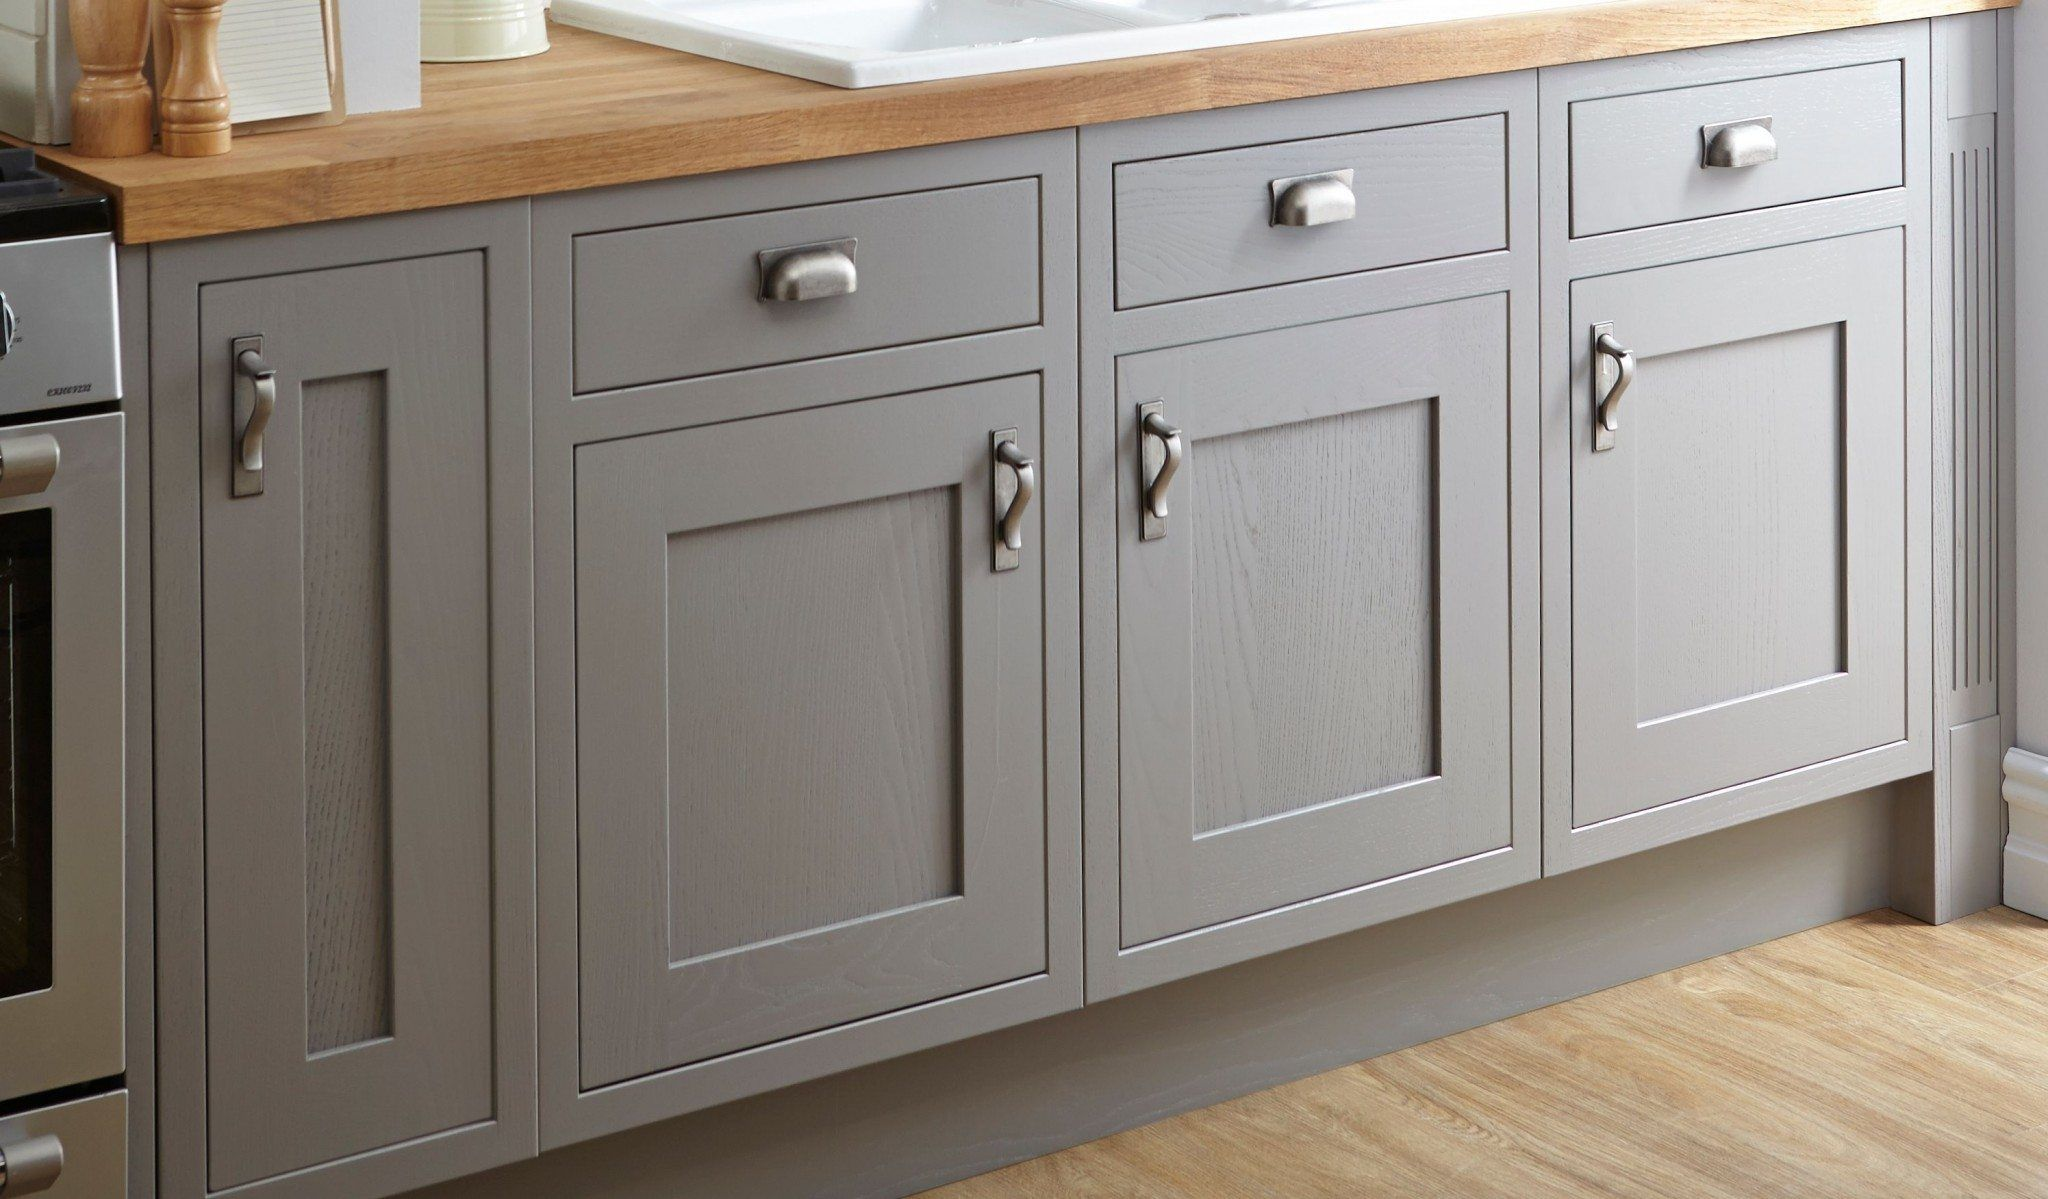 Grey Cabinet Doors With Metal S In The Kitchen Butcher Block Countertops Diffe Types Of